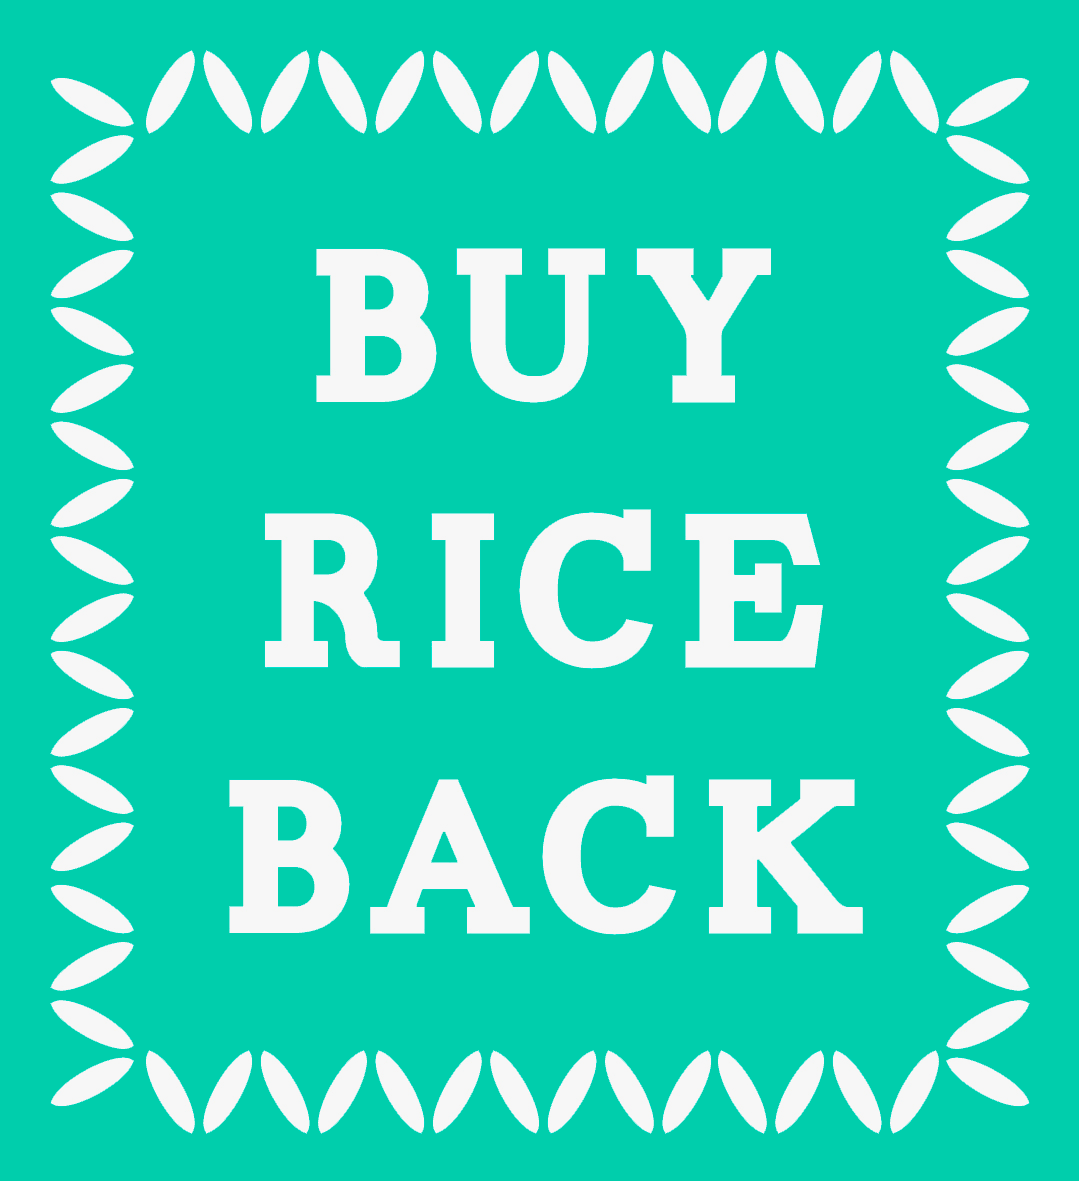 Buy rice back